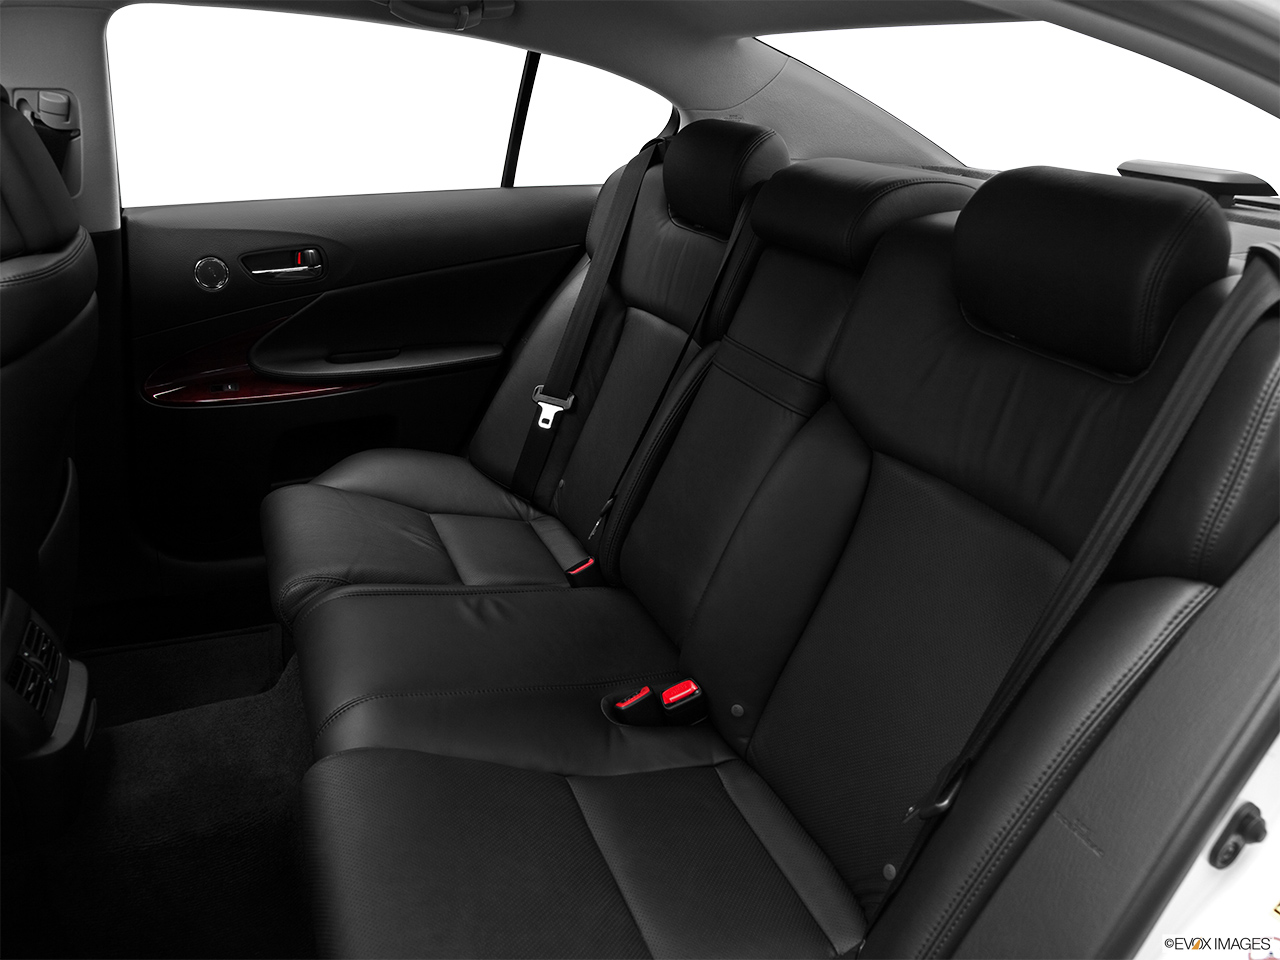 2011 Lexus GS Hybrid GS450h Rear seats from Drivers Side.